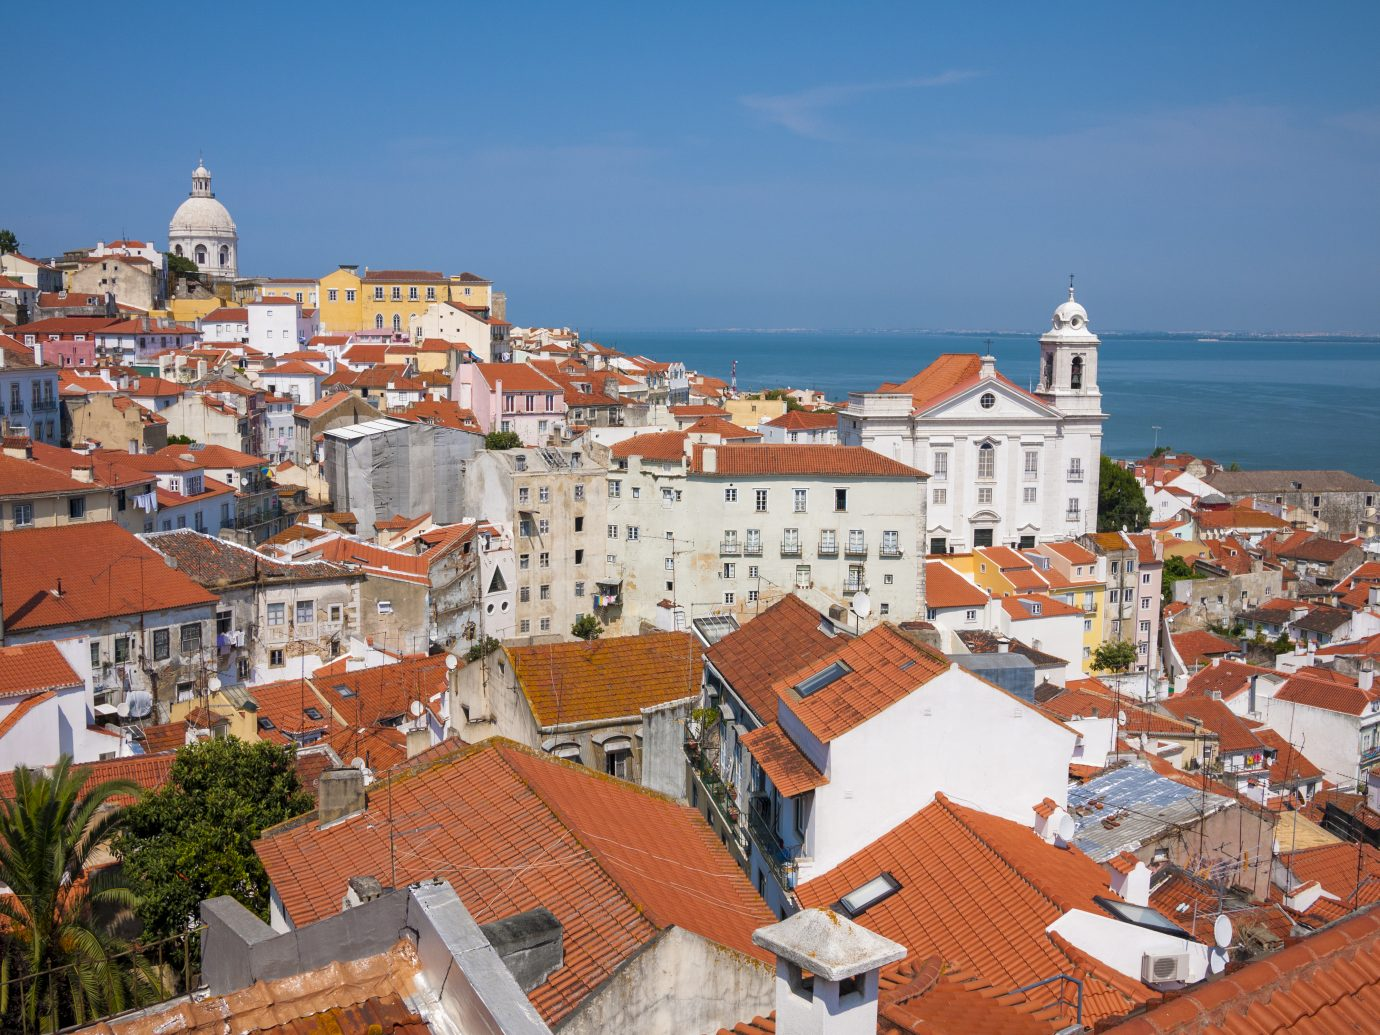 Lisbon Alfama district with red roofs and view of river Tagus - vertical view